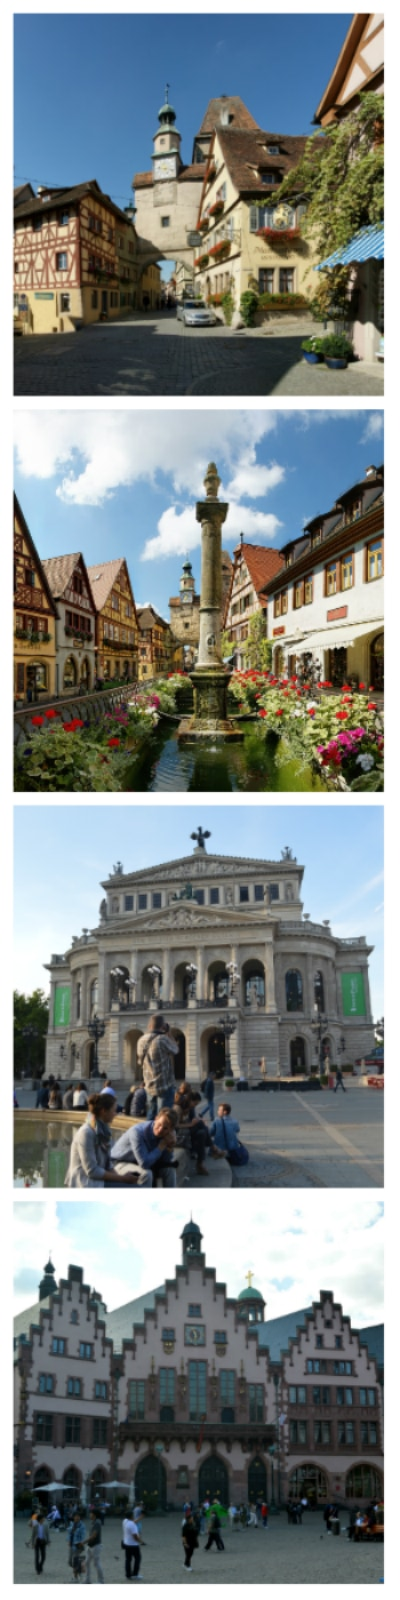 Rothenburg ob der Tauber and Roemerberg and Concert House in Frankfurt Germany To-europe.com